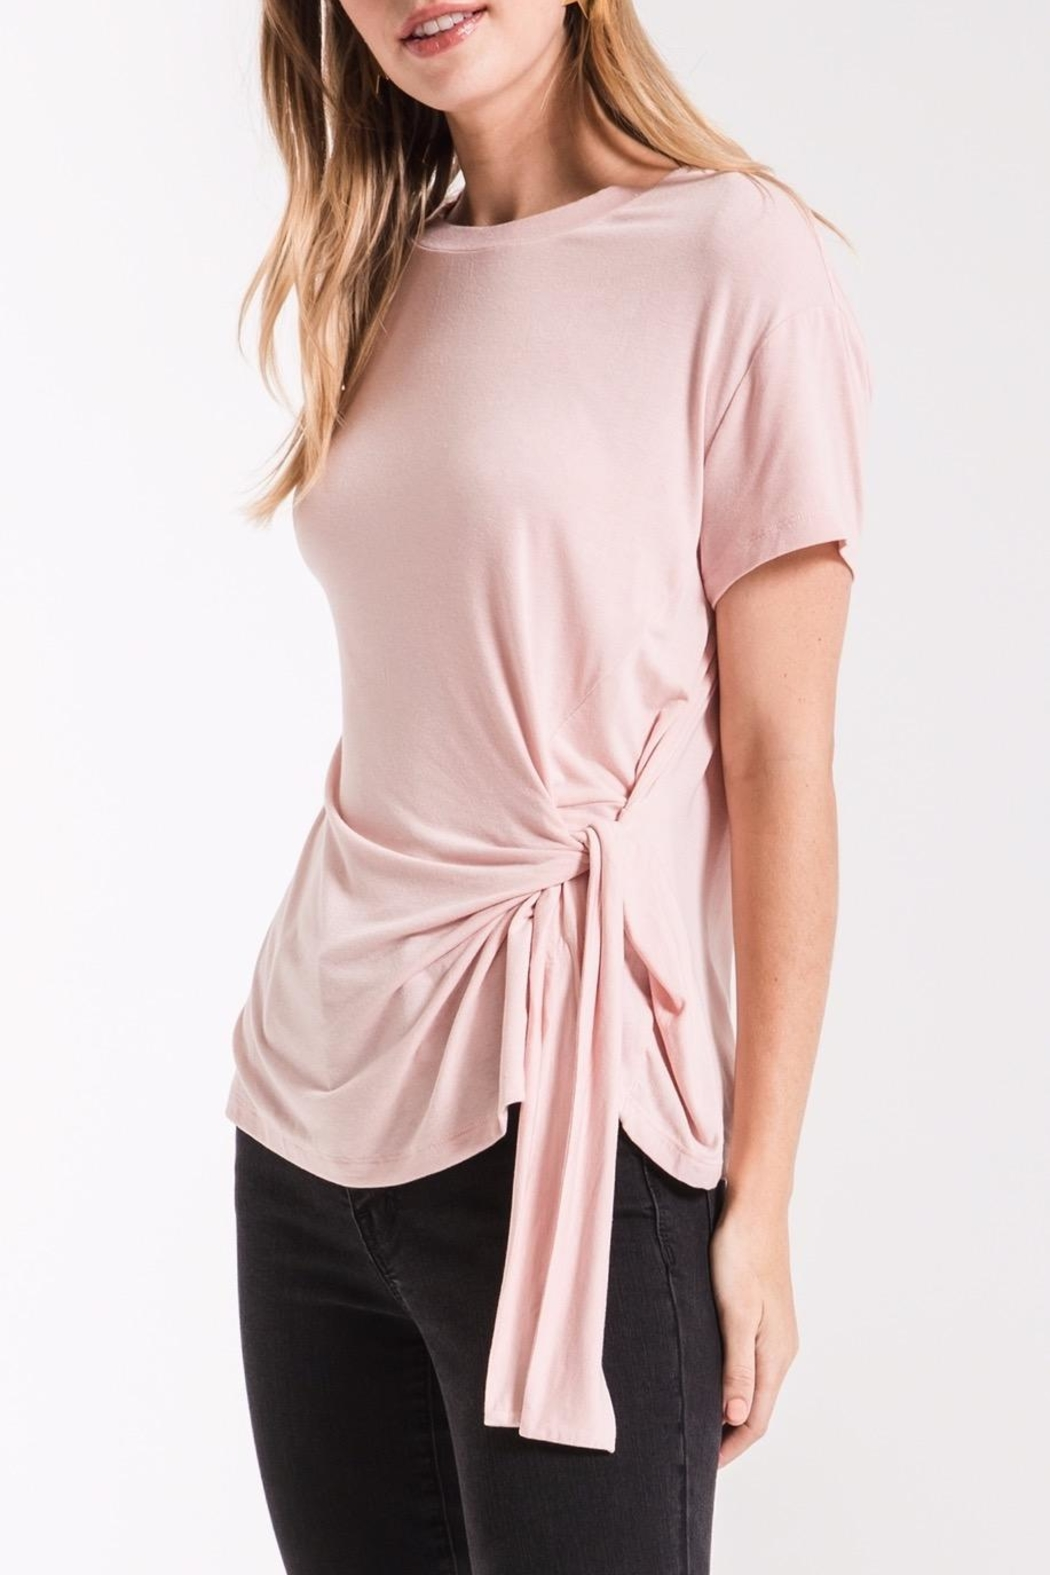 z supply Side Wrap Tee - Side Cropped Image